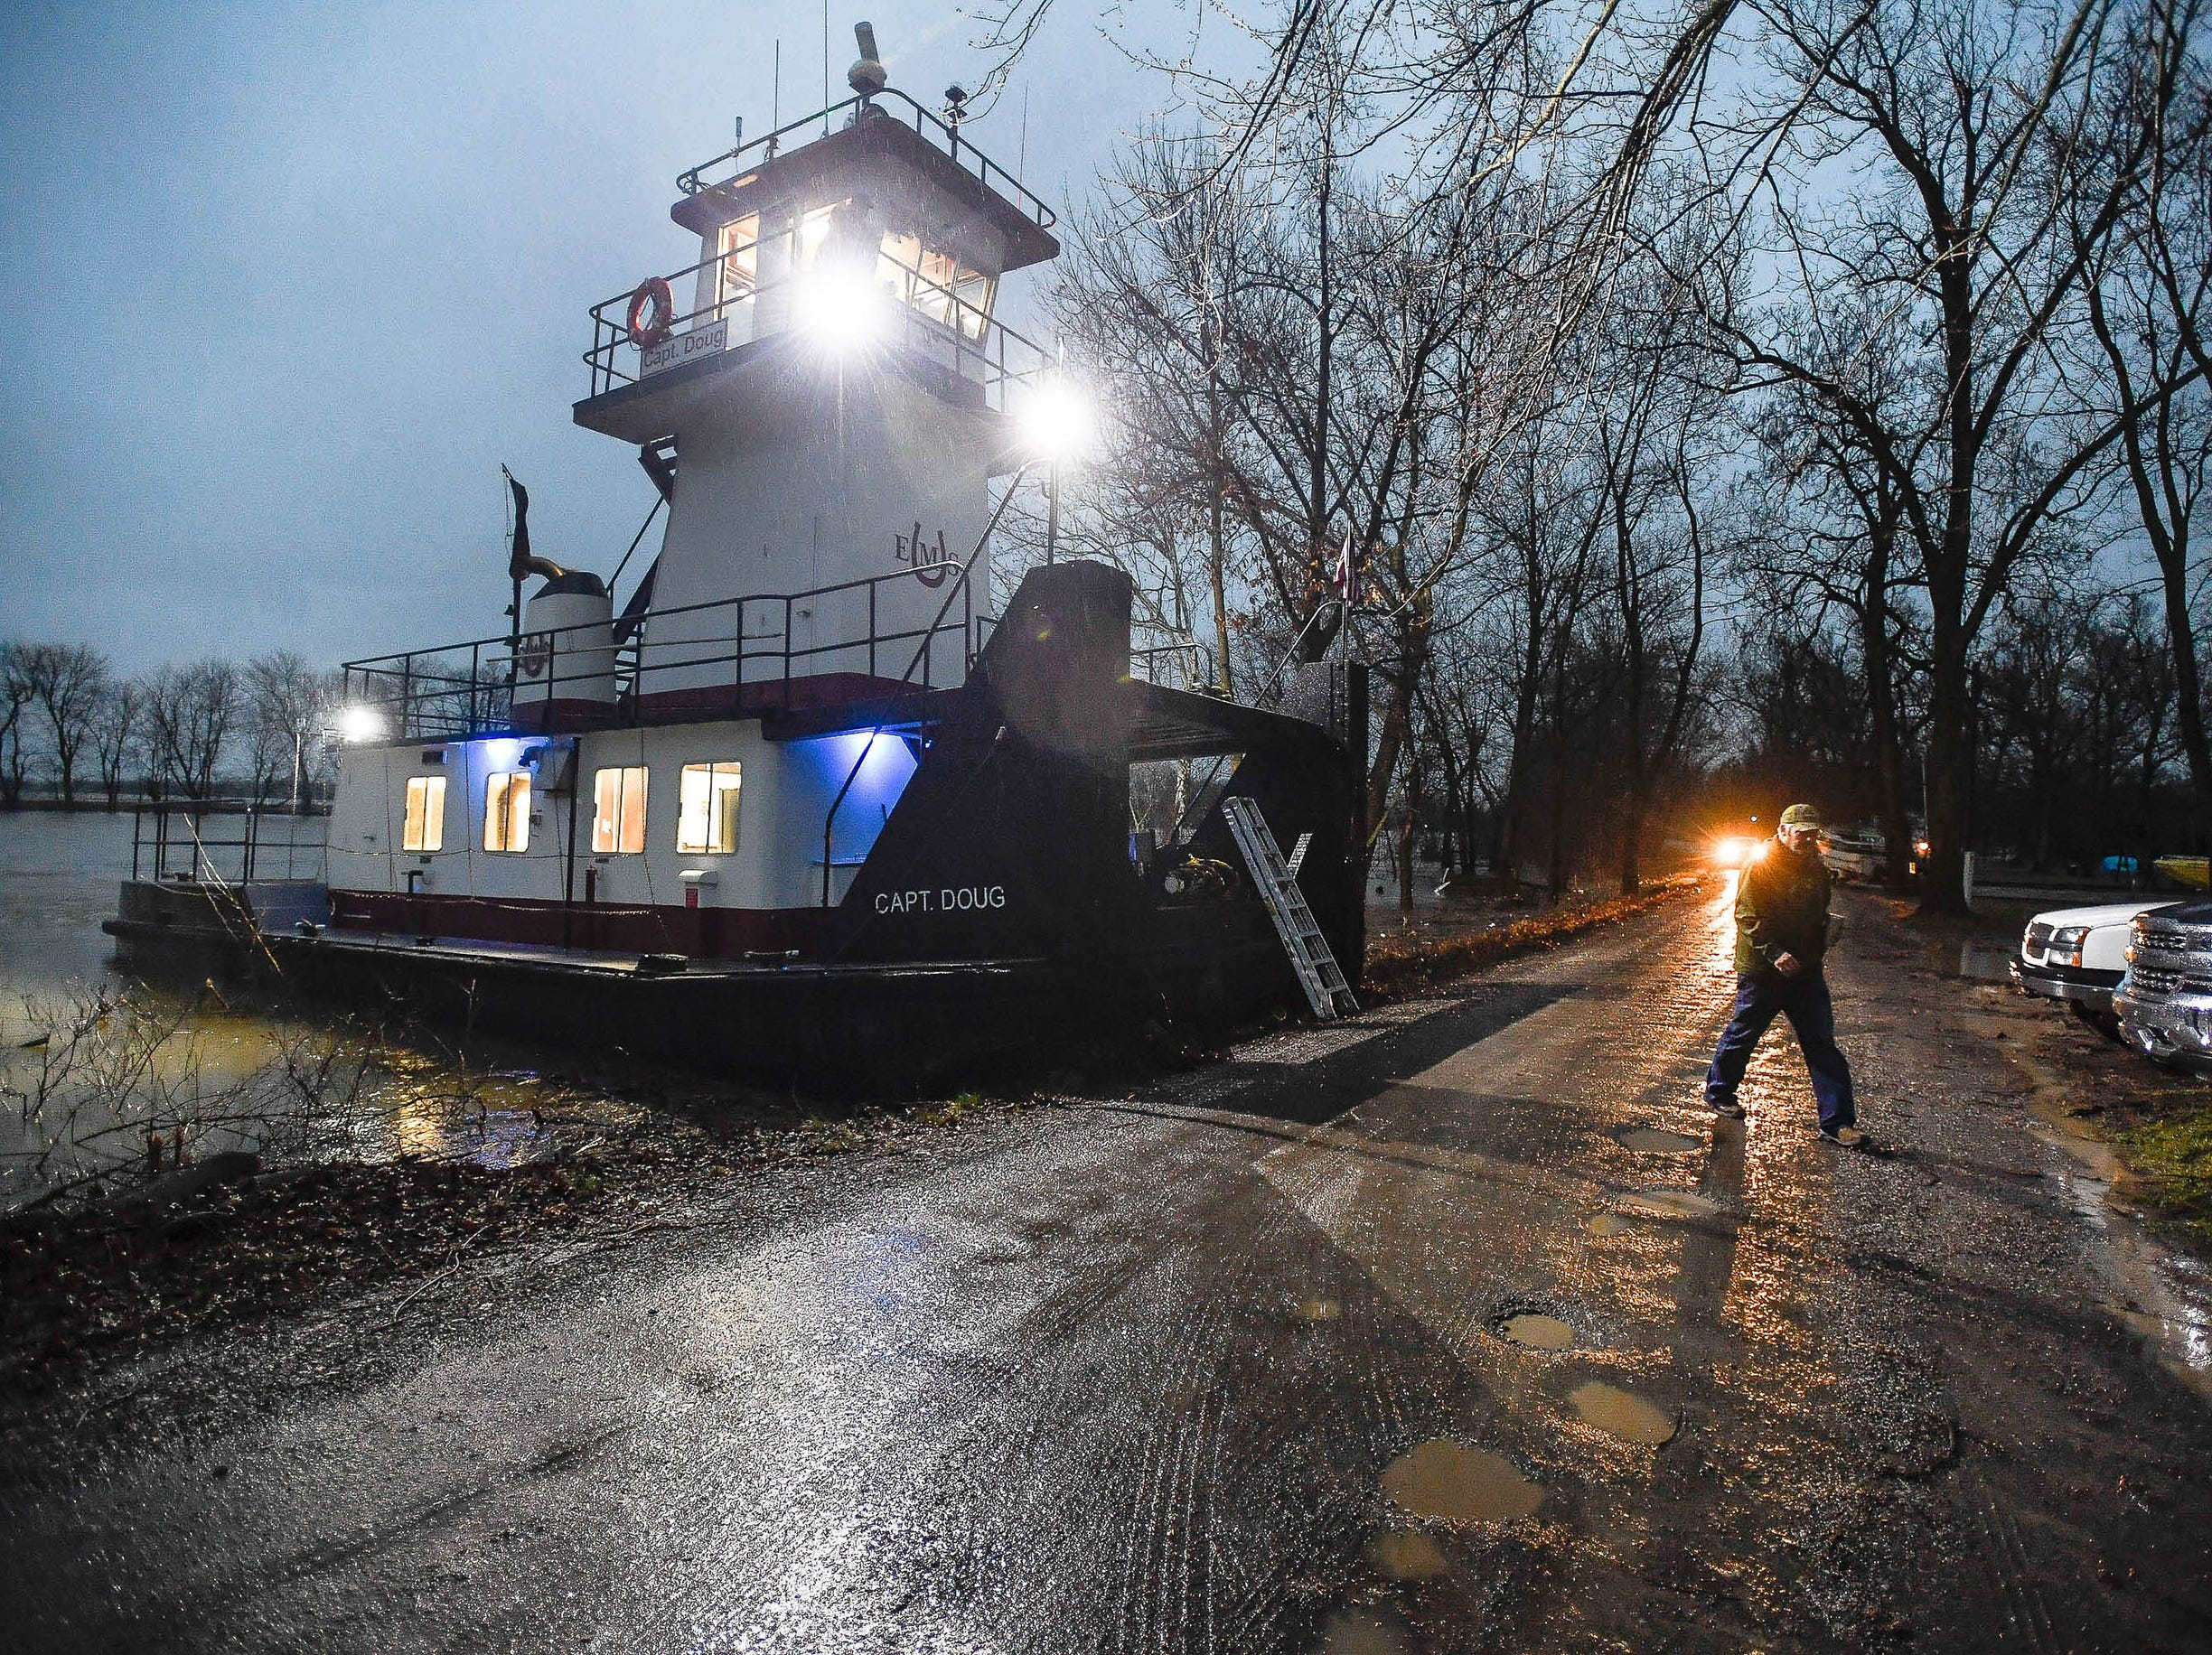 The rivers are rising, crewman Nathan Ligon with the towboat Capt. Doug from Evansville Marine Service uses Henderson's Green River Road #1 for a landing because the road to their service dock is flooded by the Green River Wednesday, February 21, 2018.